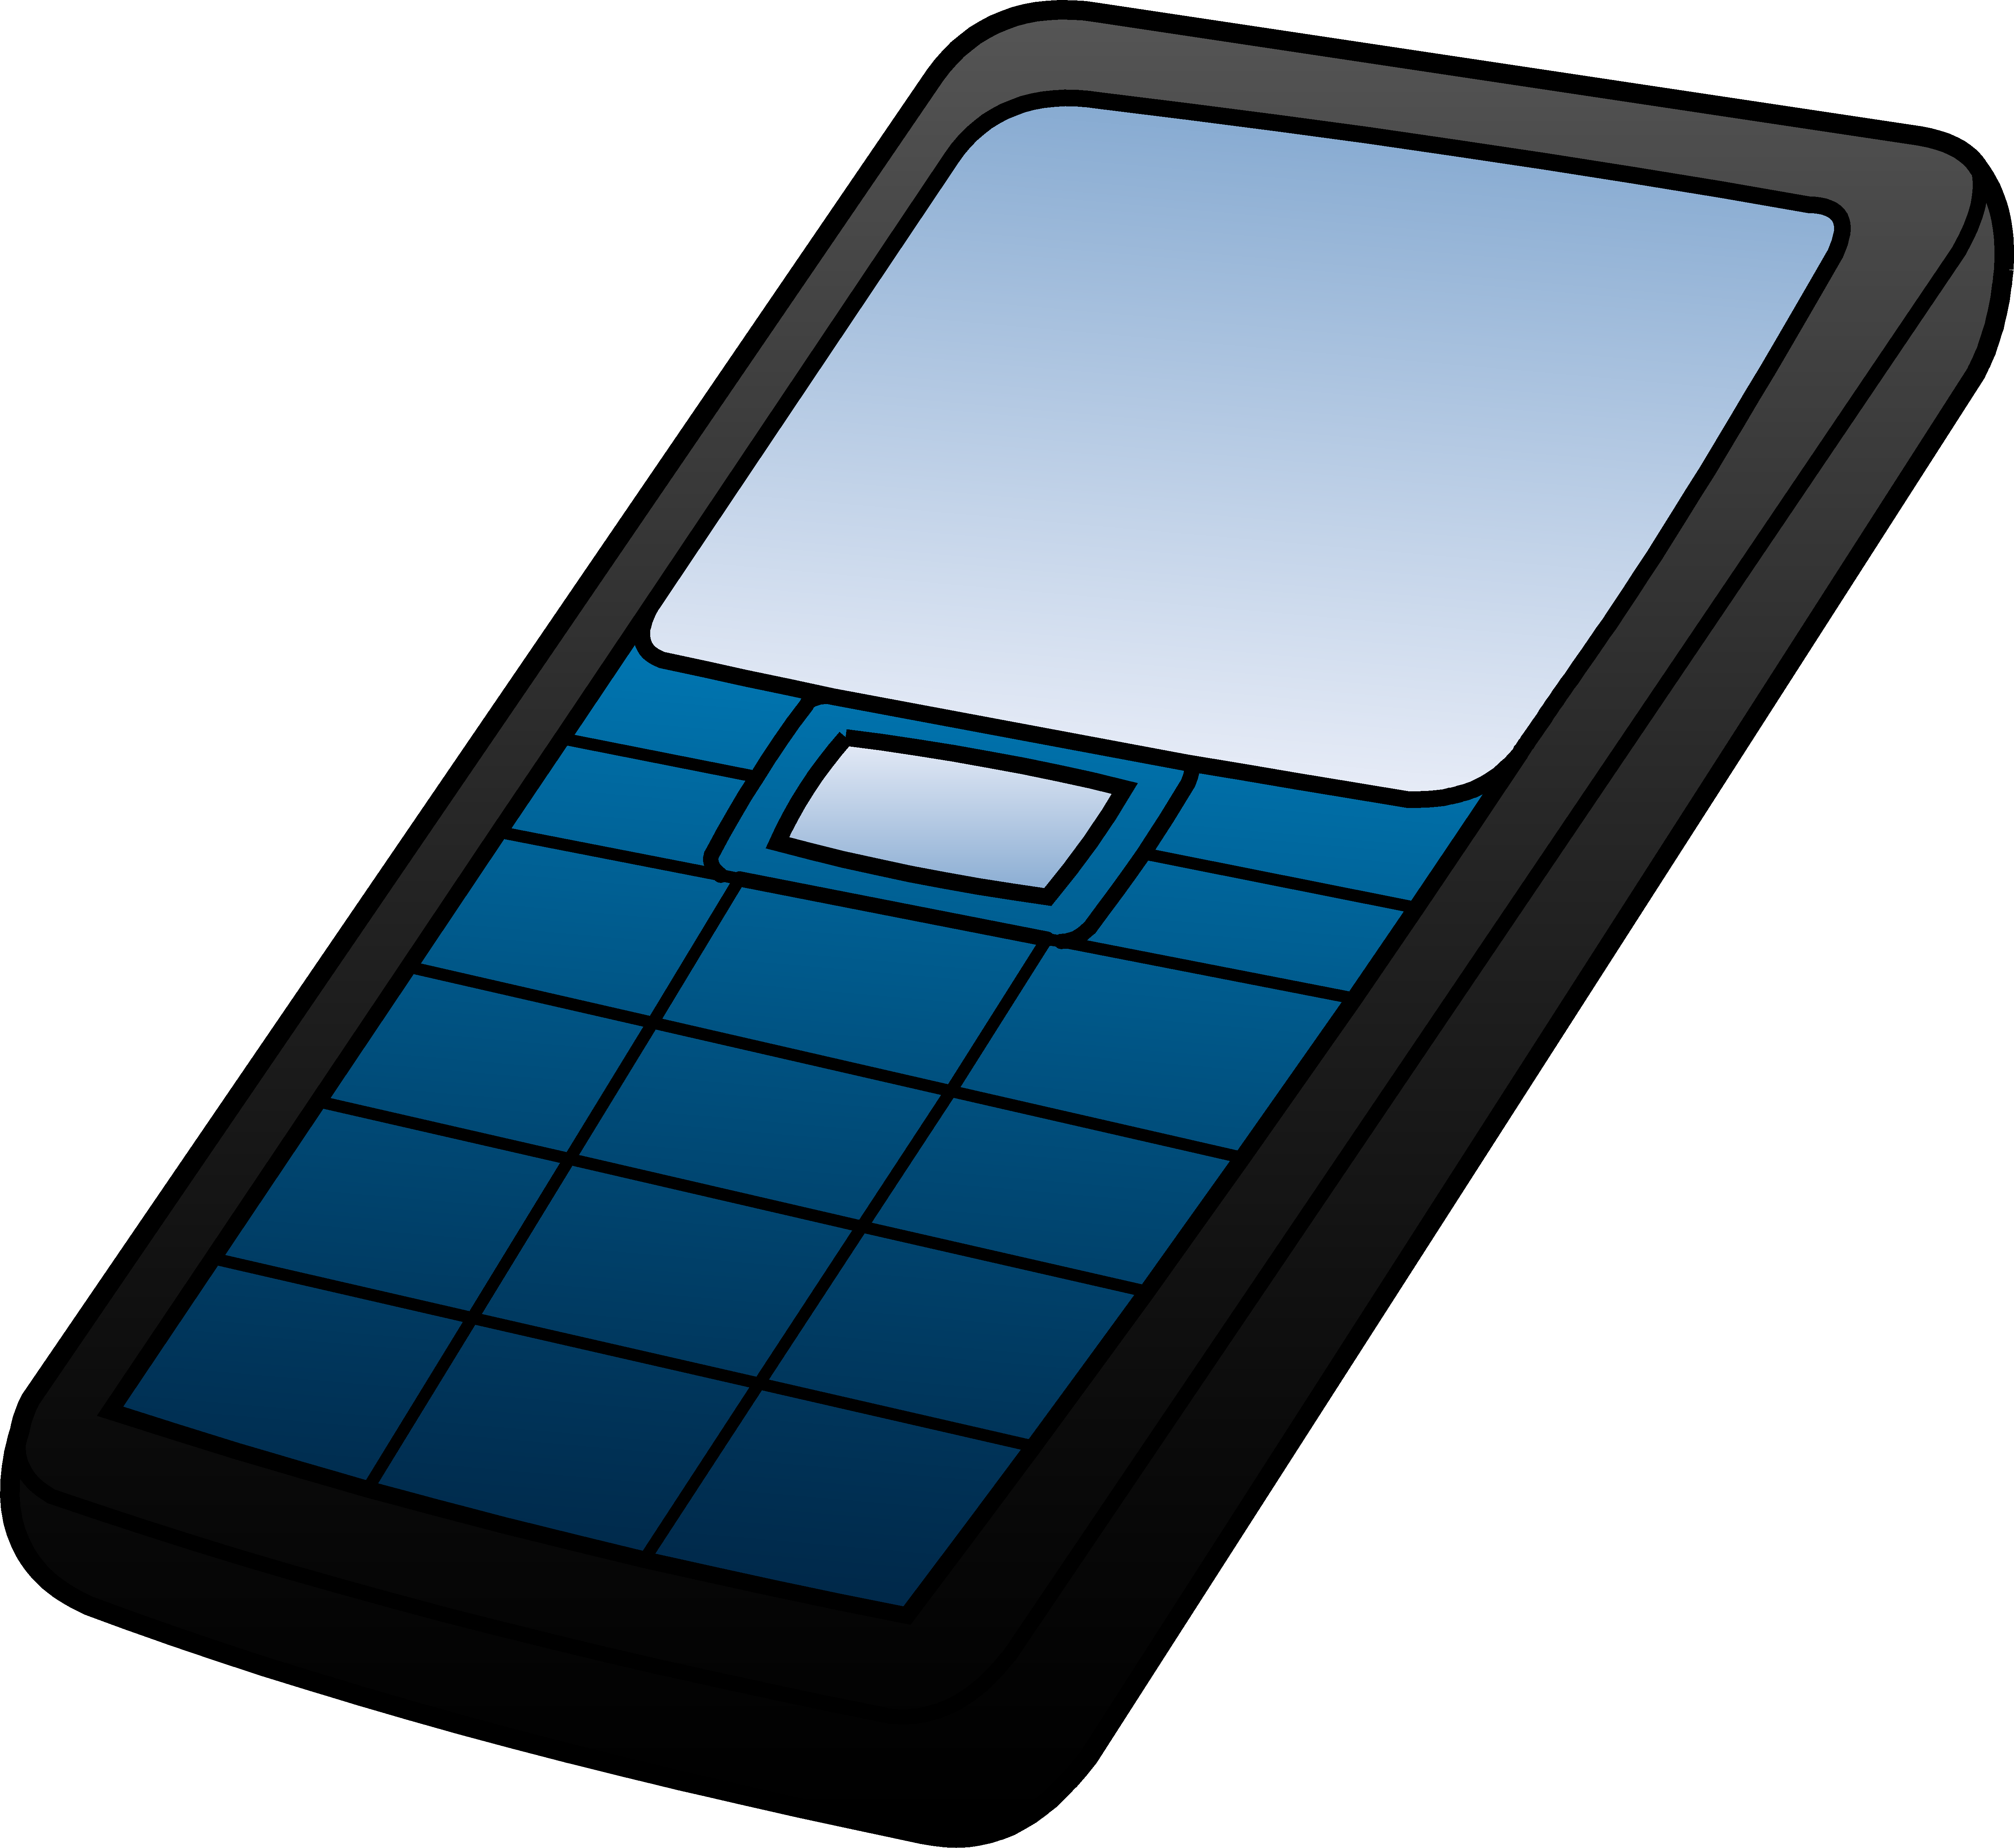 jpg free download New cell phone . Cellphone clipart.